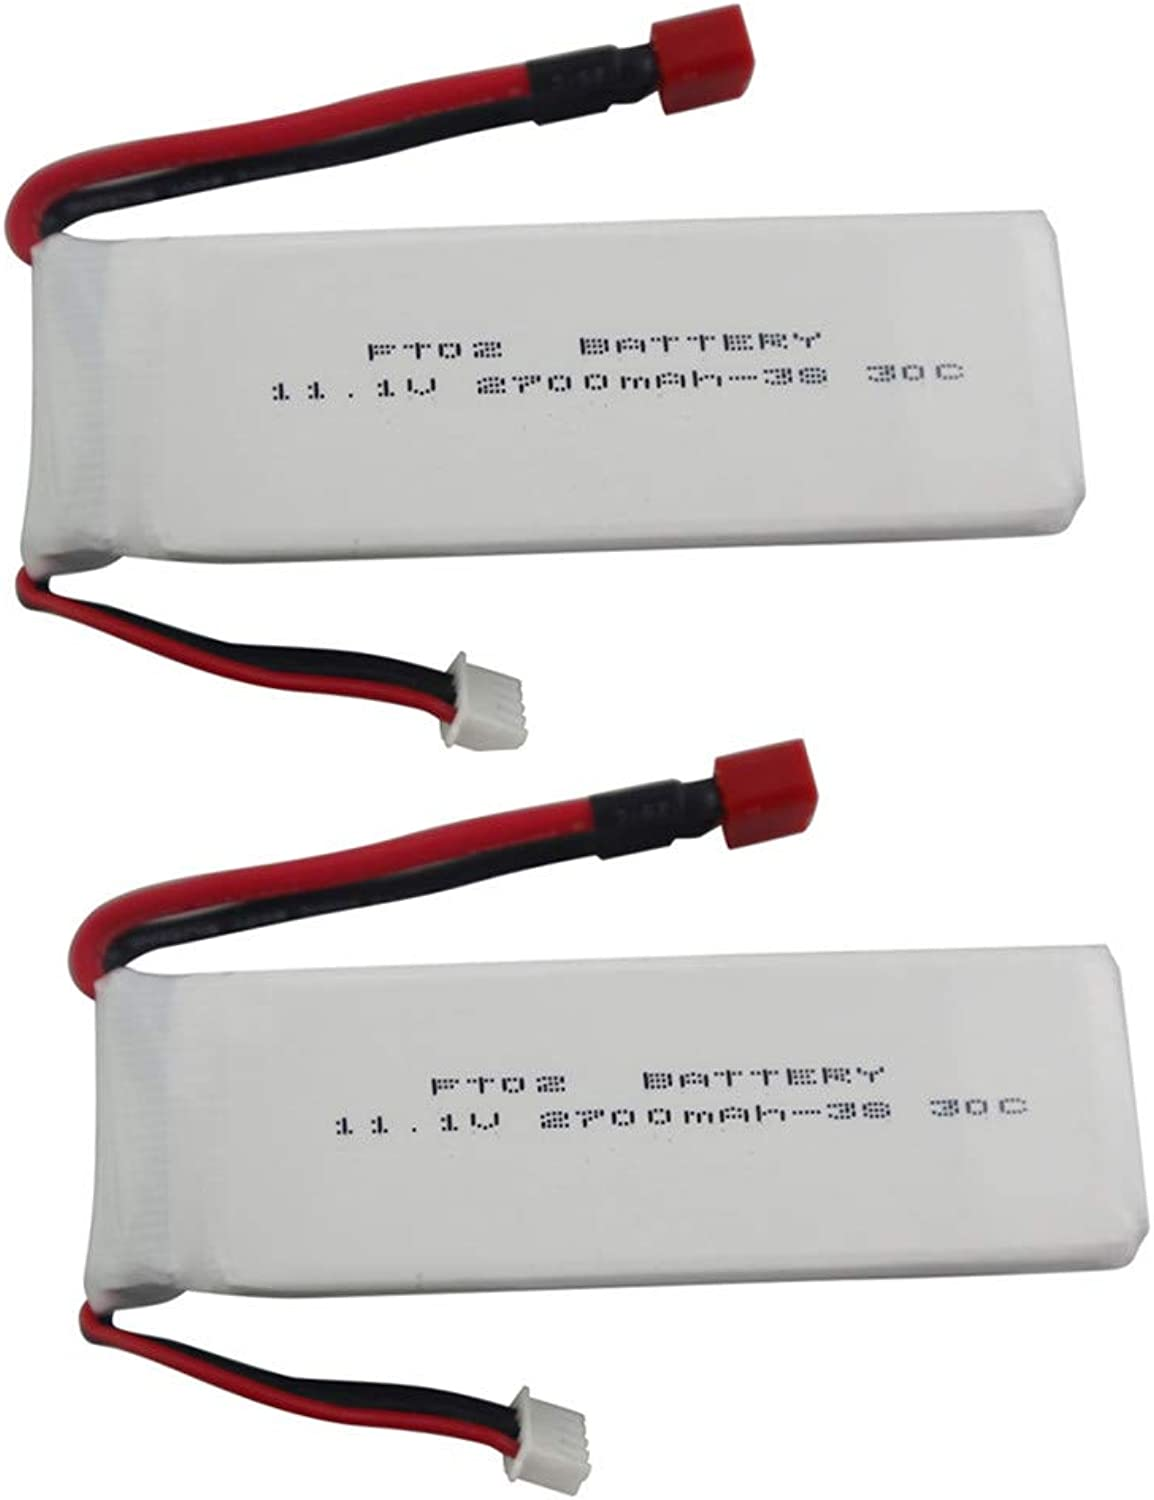 Sea jump 2PCS 11.1V 2700mah Lithium Battery for Feilun FT012 Remote Control Speedboat SUpgrade Battery Accessories RC Airplane Model THead High Rate Lithium Battery